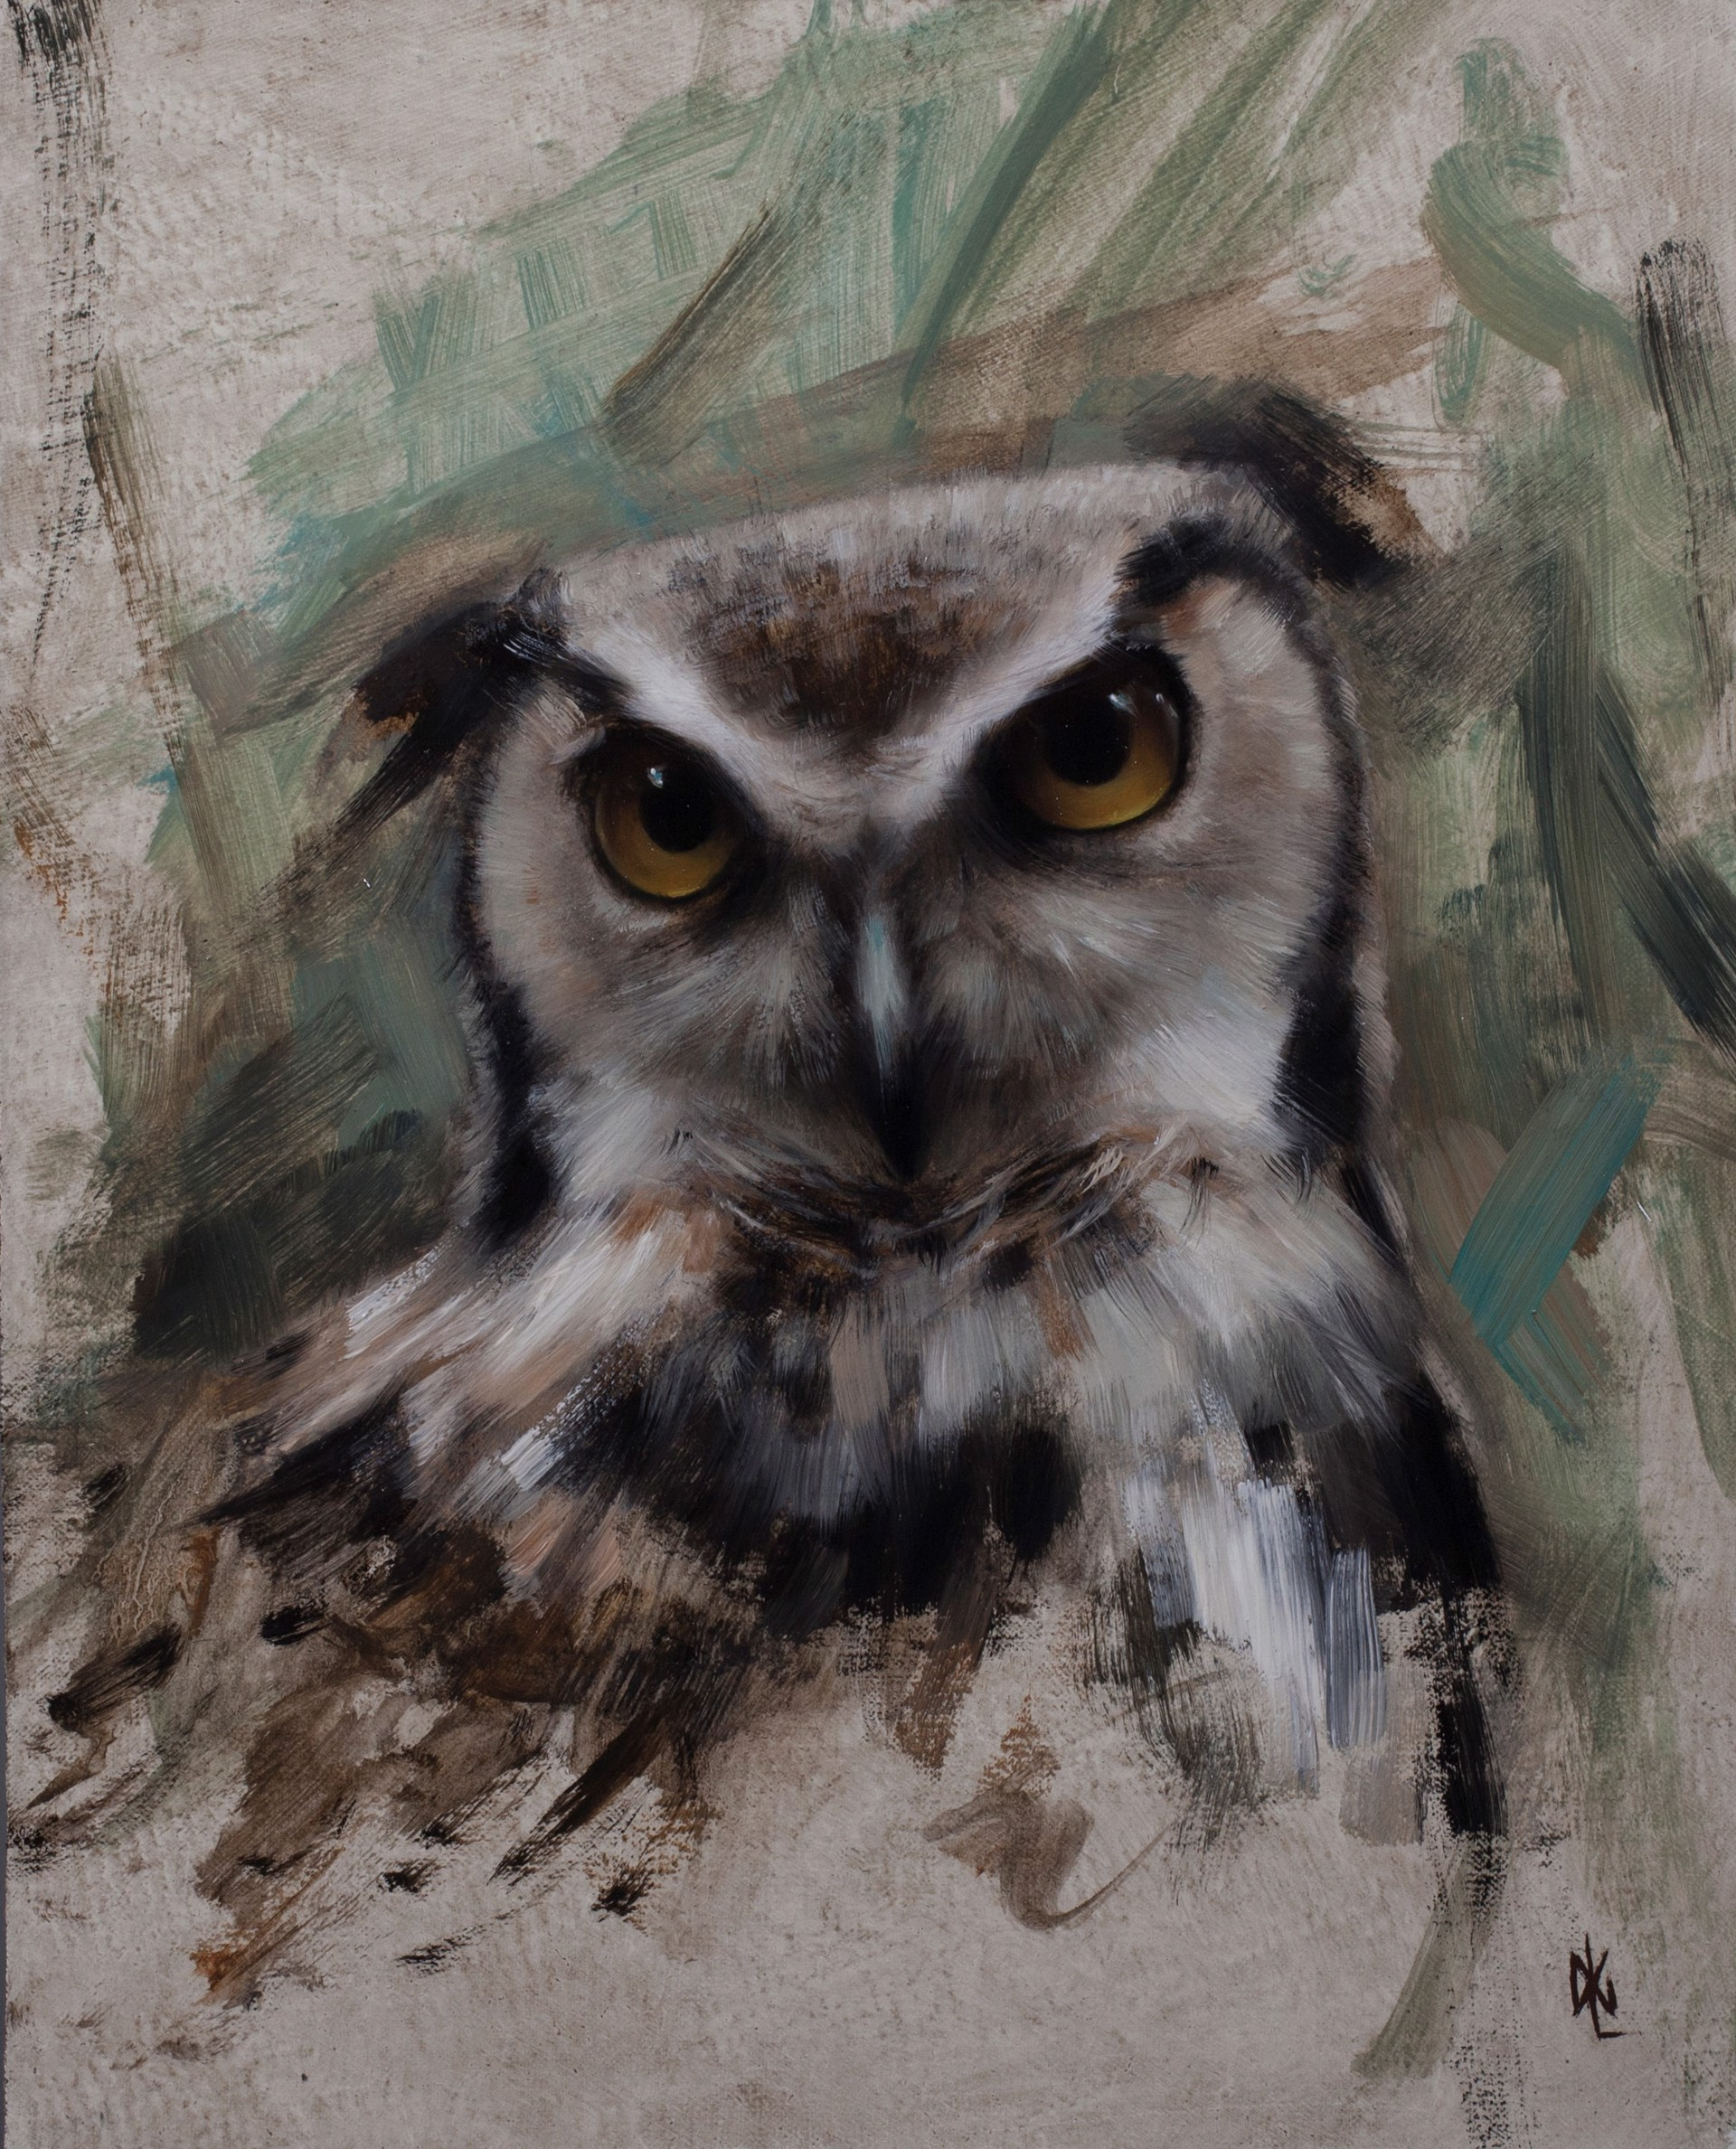 Horned Owl by David Gluck